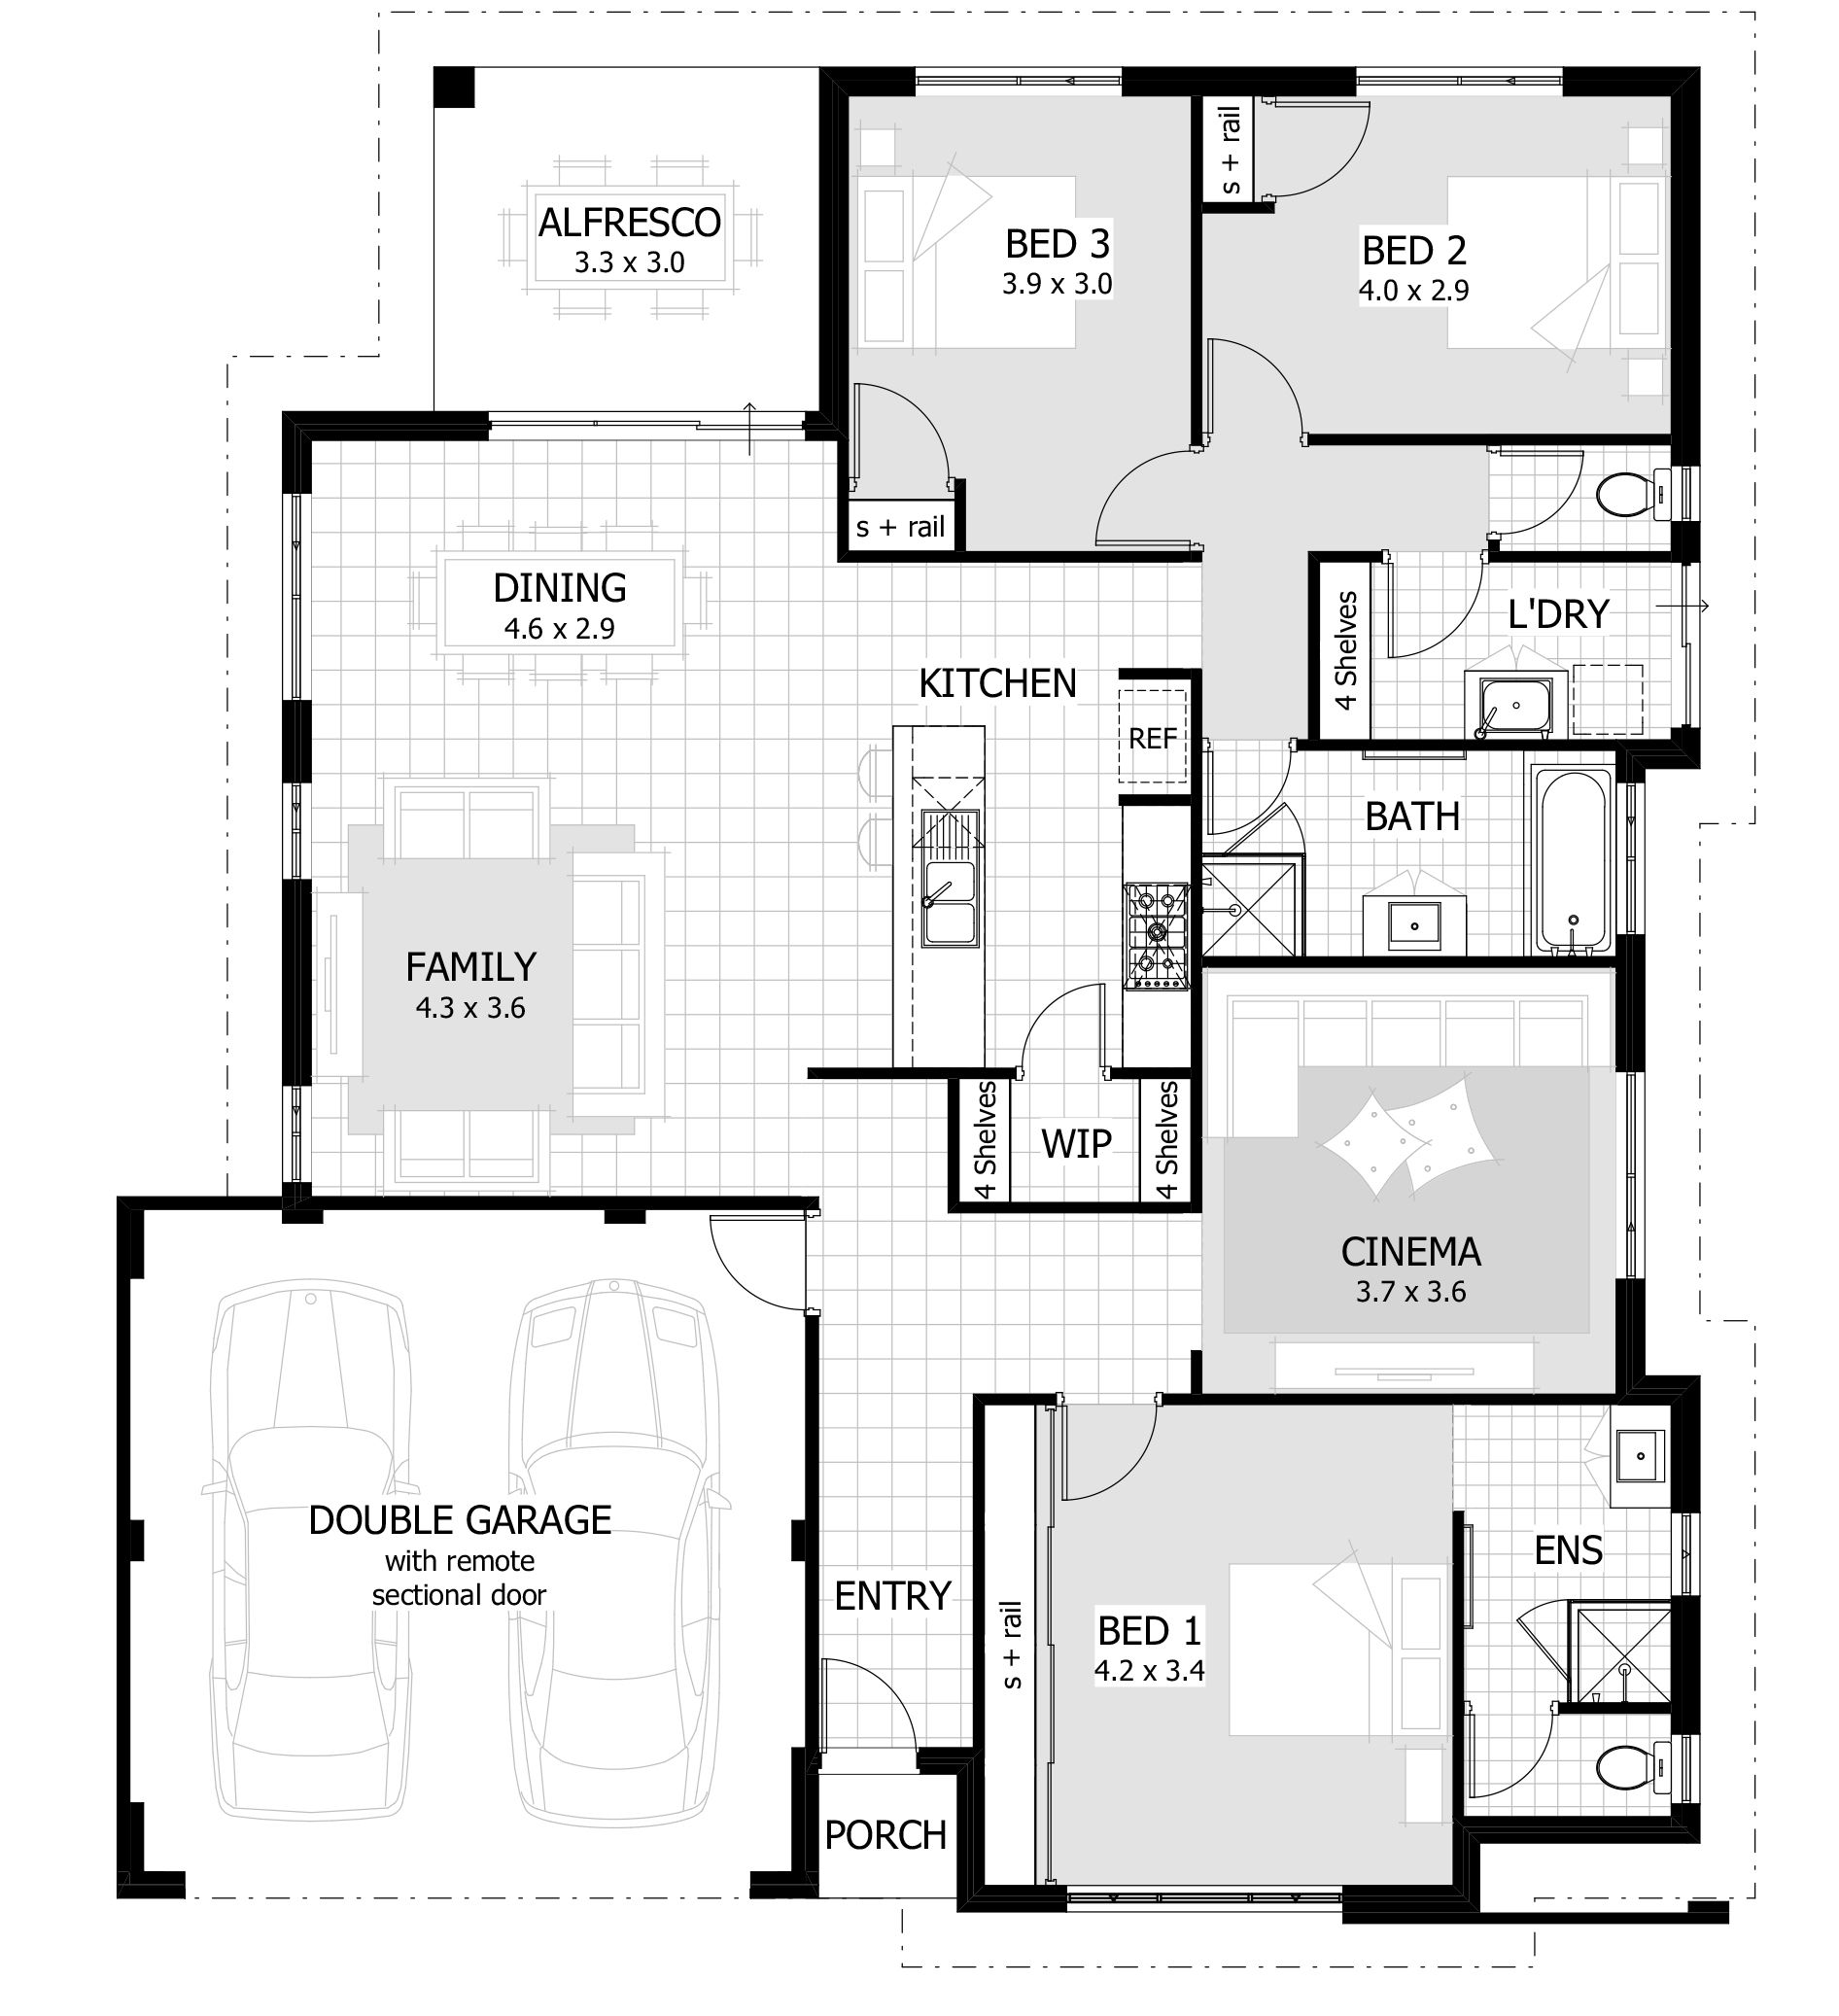 3 Bedroom Small House Floor Plans   A tiny bedroom isn t a curse. Over 35 large  premium house designs  and house   House plans